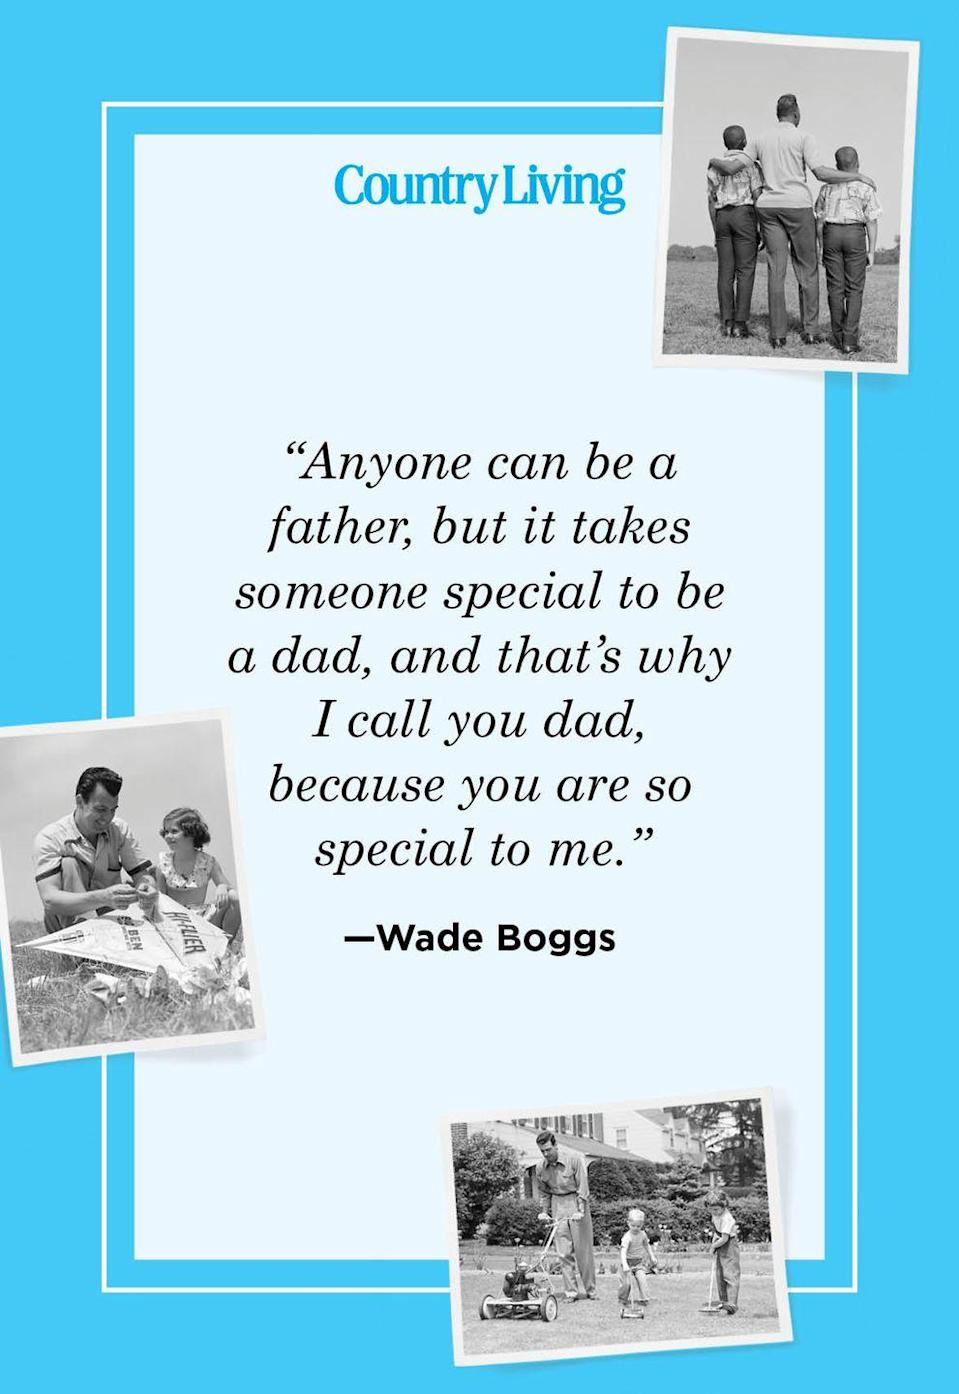 "<p>""Anyone can be a father, but it takes someone special to be a dad, and that's why I call you dad, because you are so special to me.""</p>"